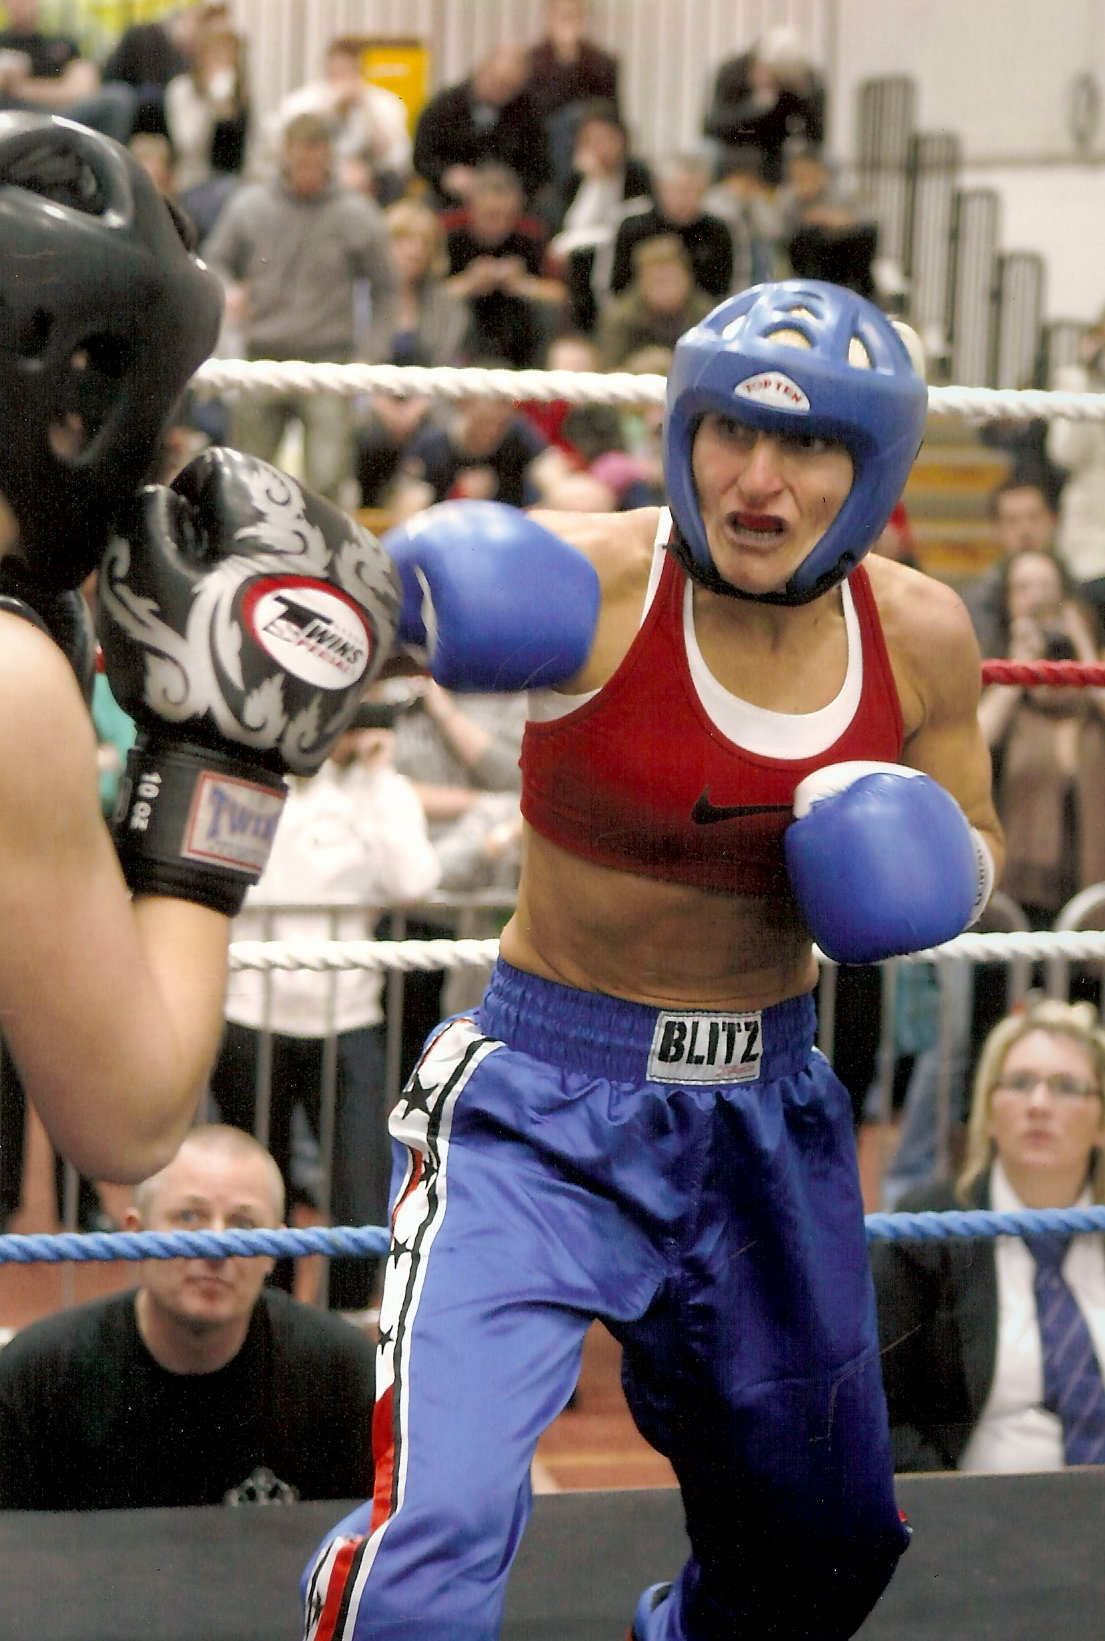 Helen Robinson-carey British WAKO Champion